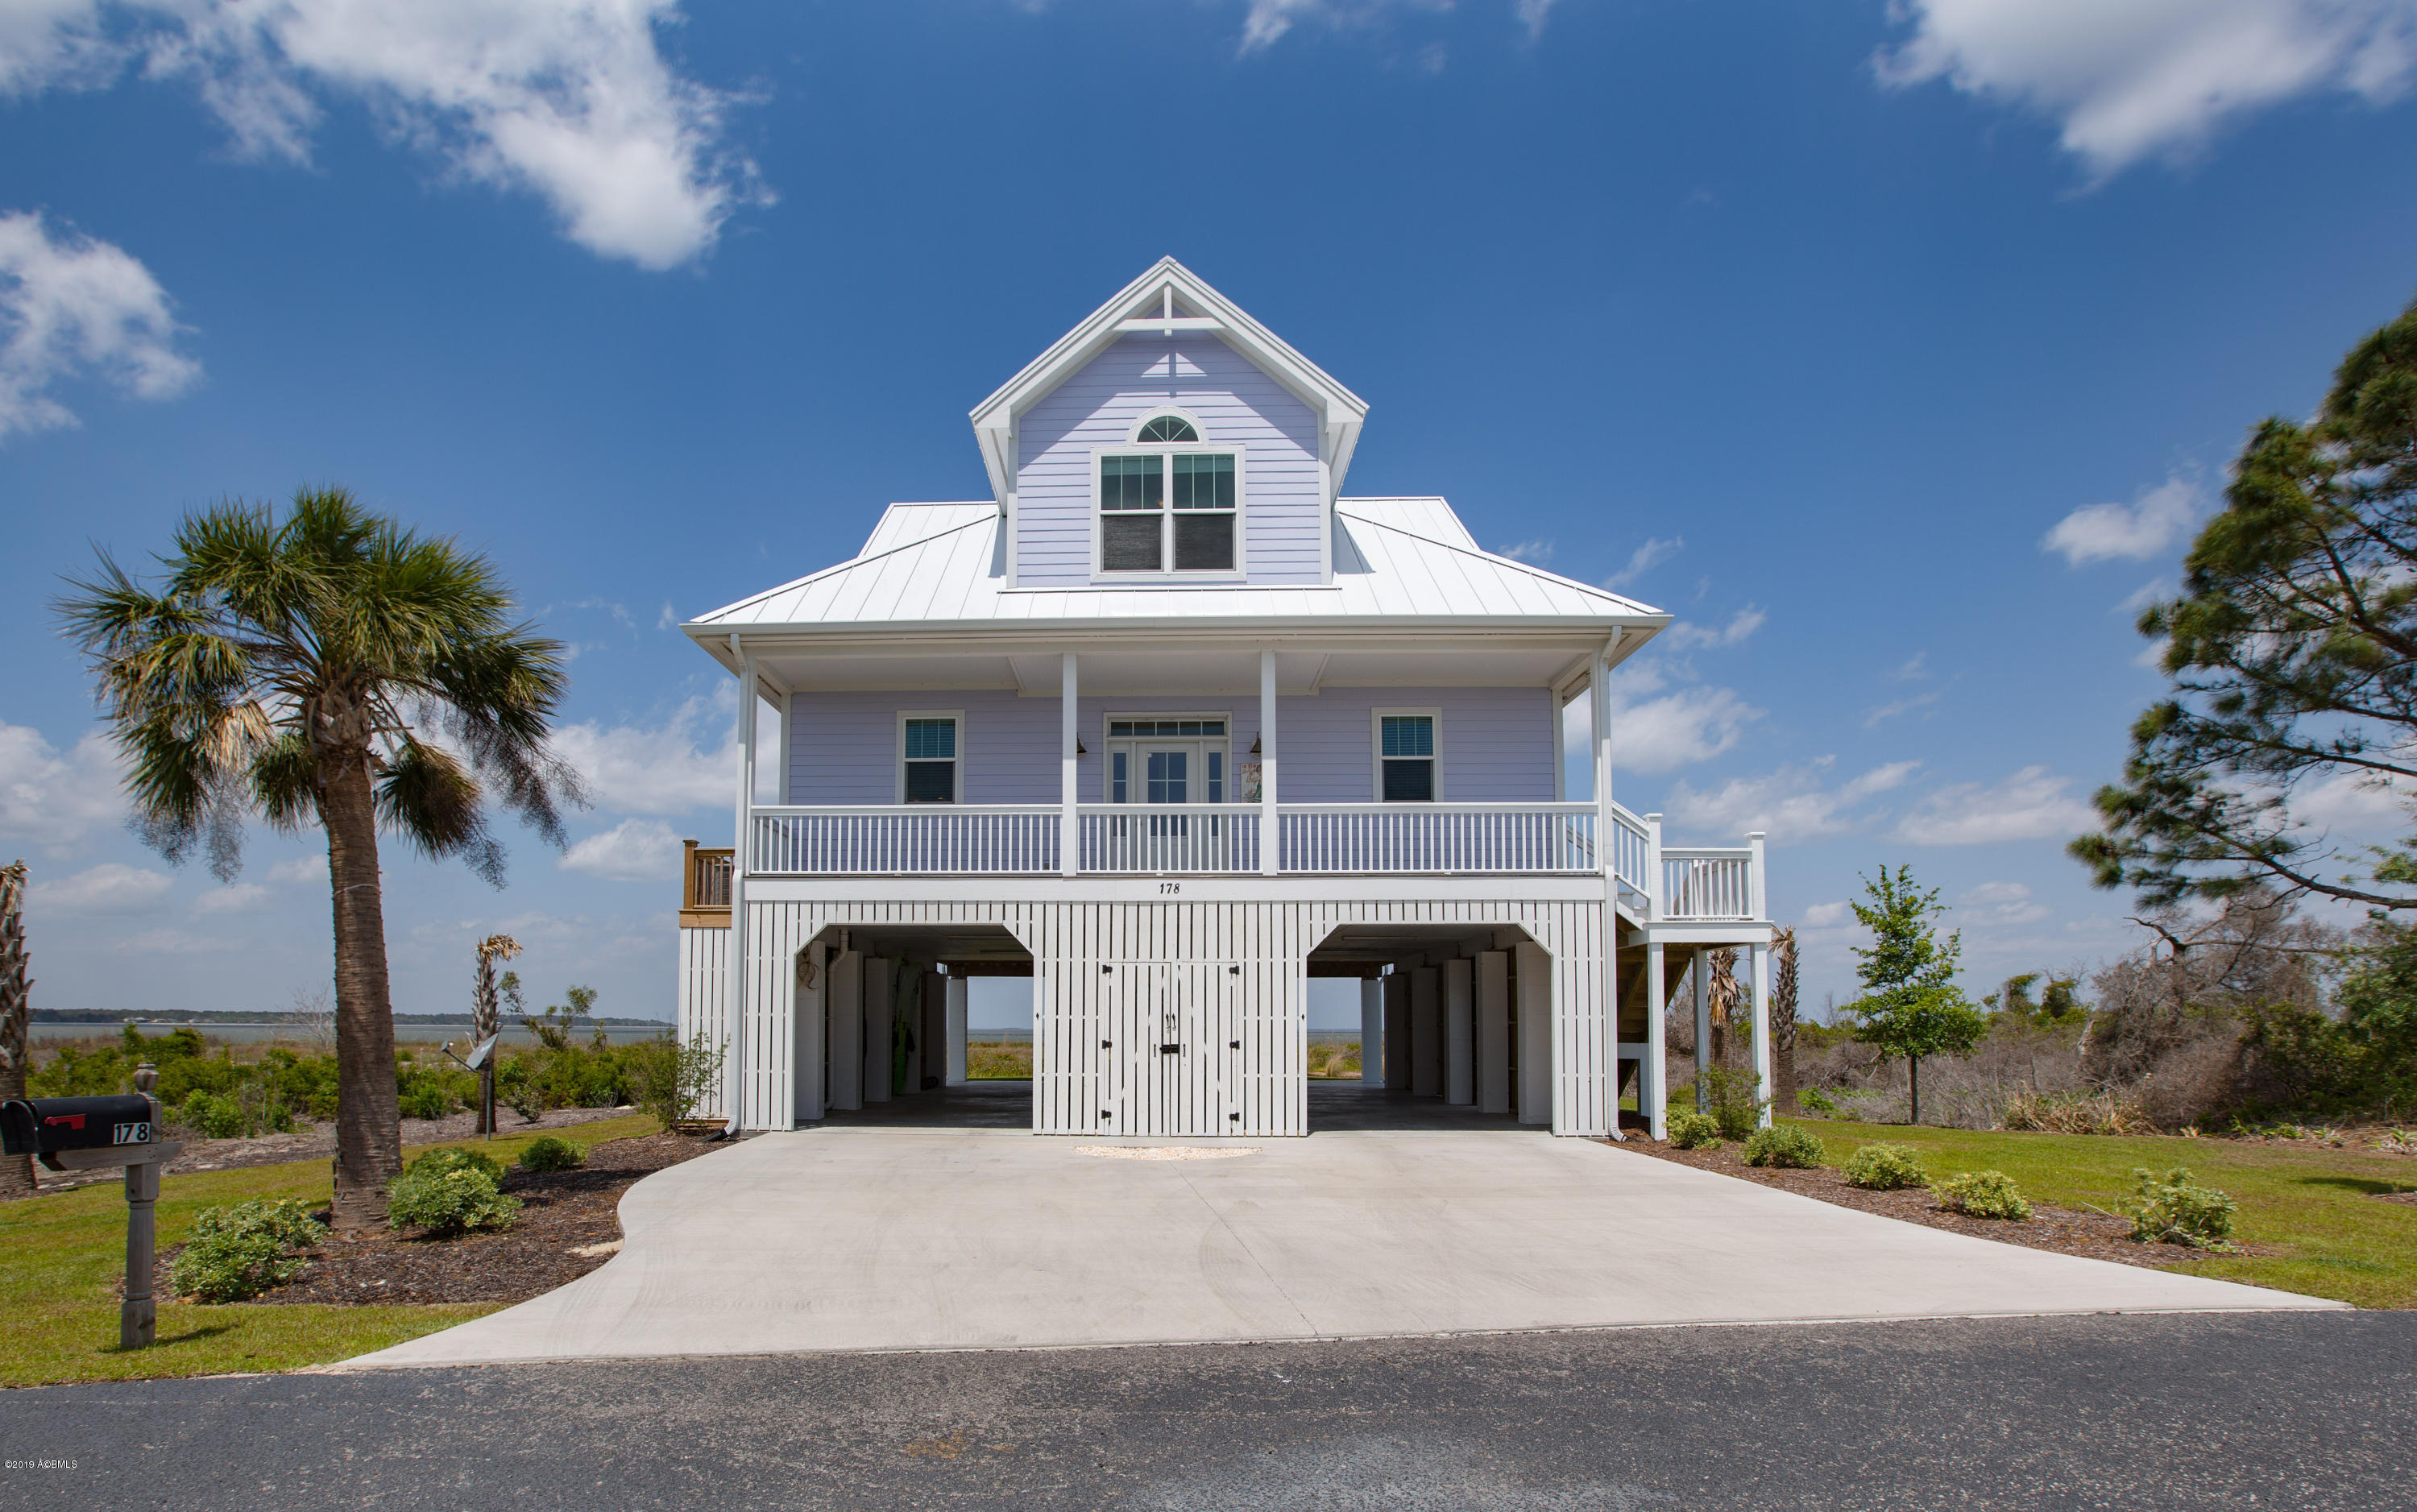 Photo of 178 N Harbor Drive, Harbor Island, SC 29920